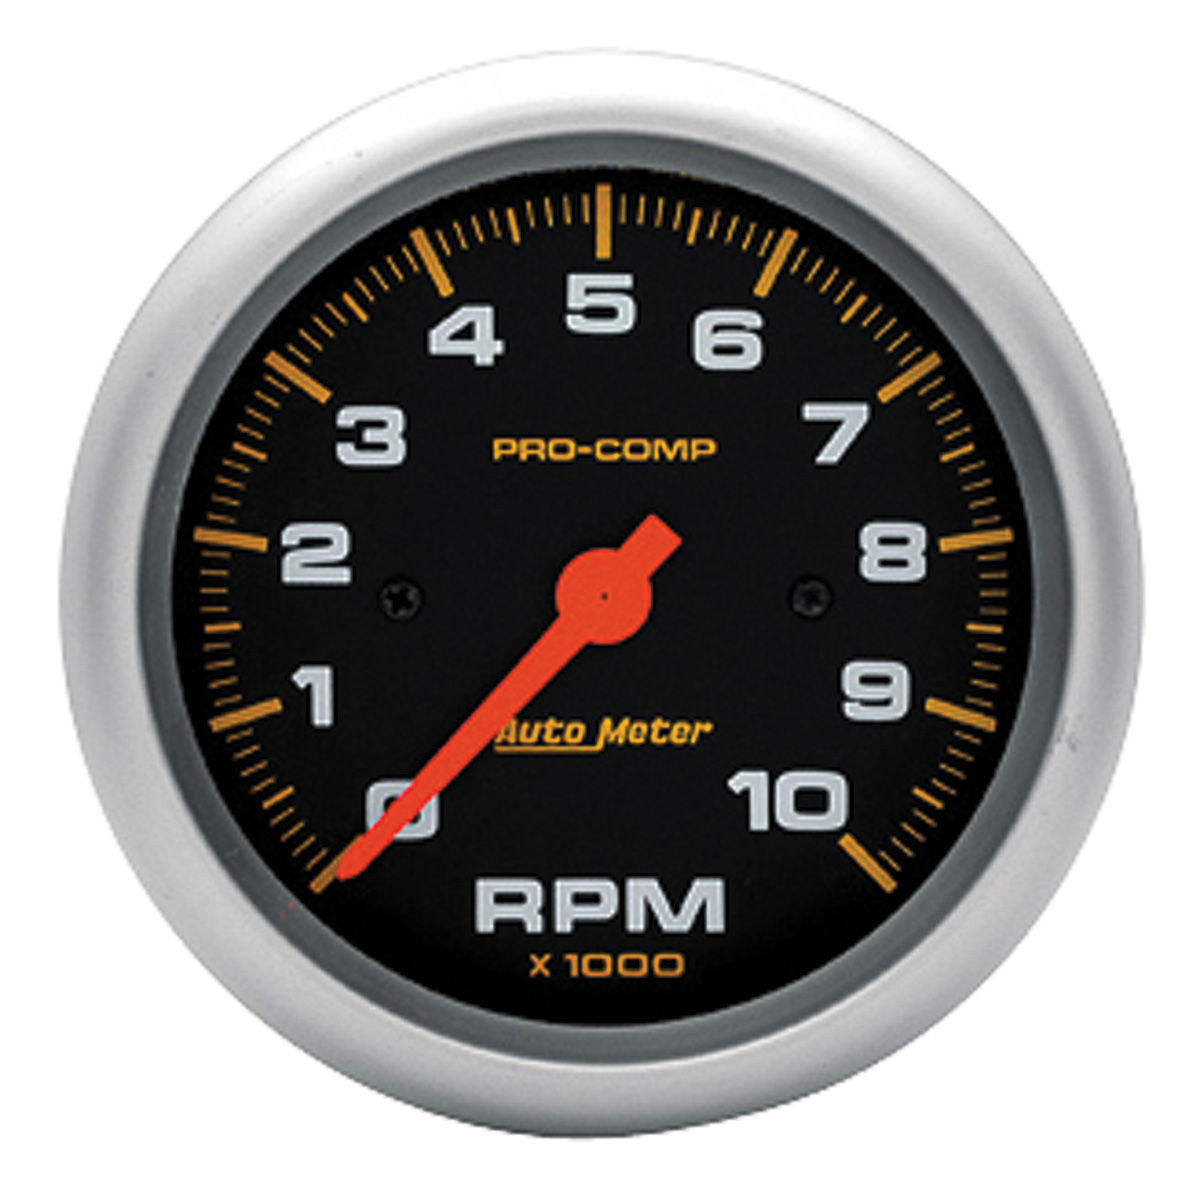 Photo of Tachometer, Pro-Comp Series 10,000 rpm